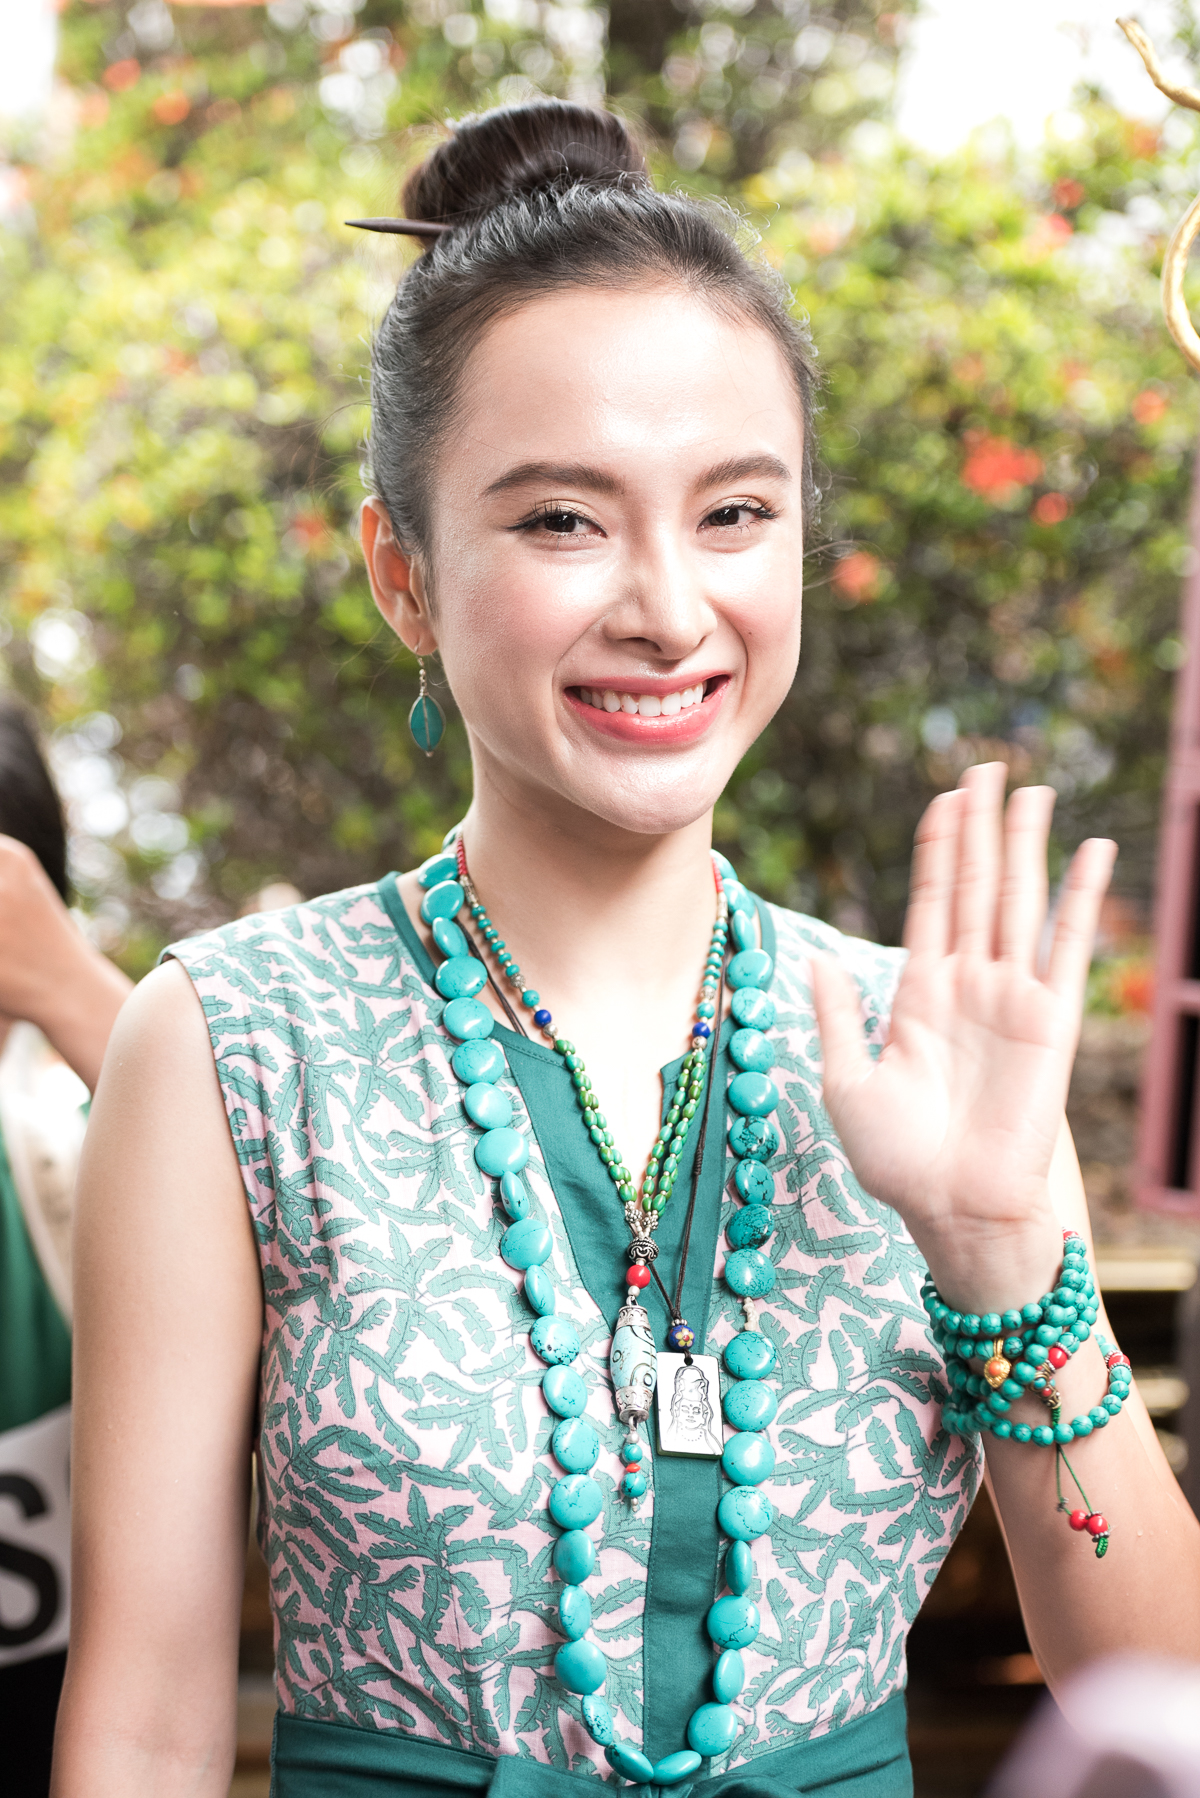 hoai linh lo net mat hoi hop truoc gio dien ra le gio to nghiep vi dieu nay hinh anh 9